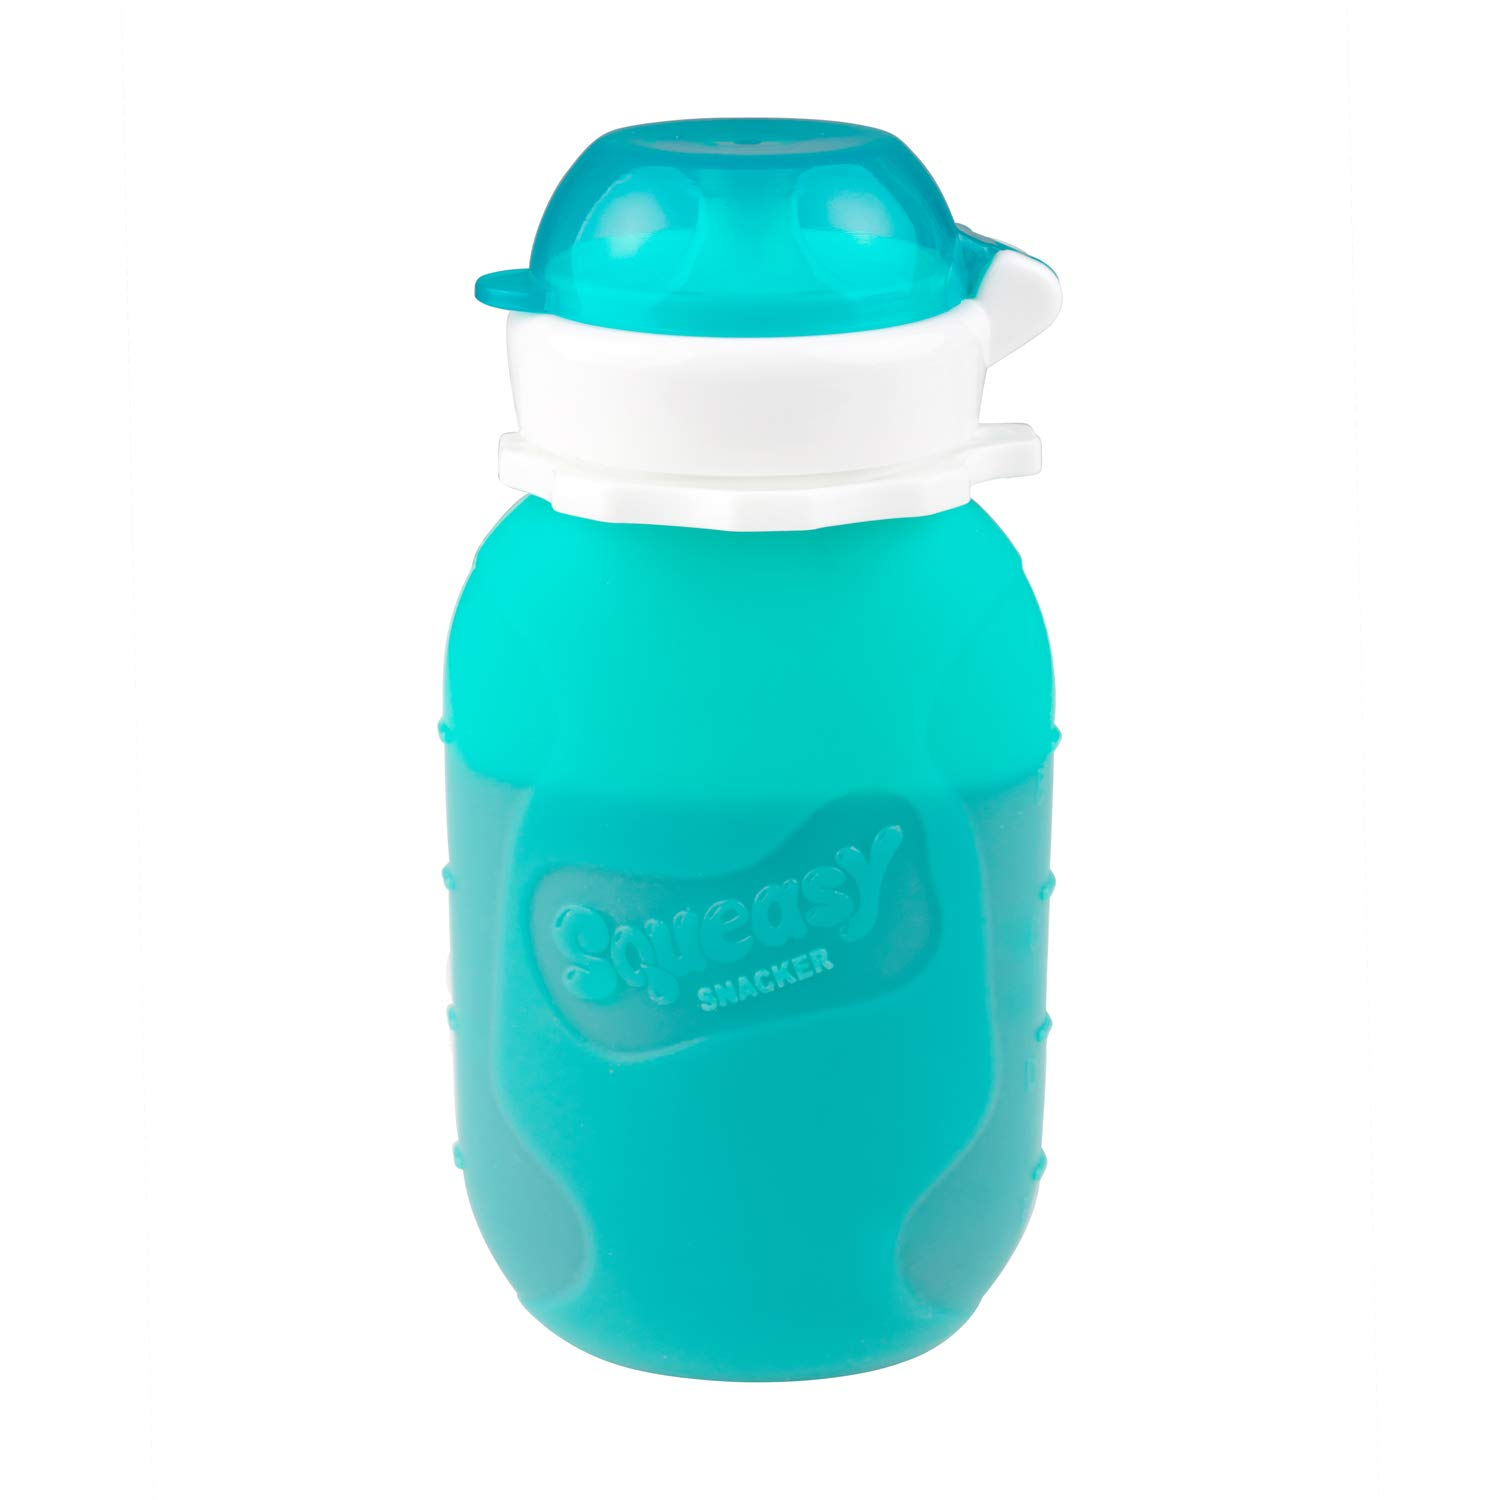 Aqua 6 oz Squeasy Snacker Spill Proof Silicone Reusable Food Pouch - for Both Soft Foods and Liquids - Water, Apple Sauce, Yogurt, Smoothies, Baby Food - Dishwasher Safe by Squeasy Snacker